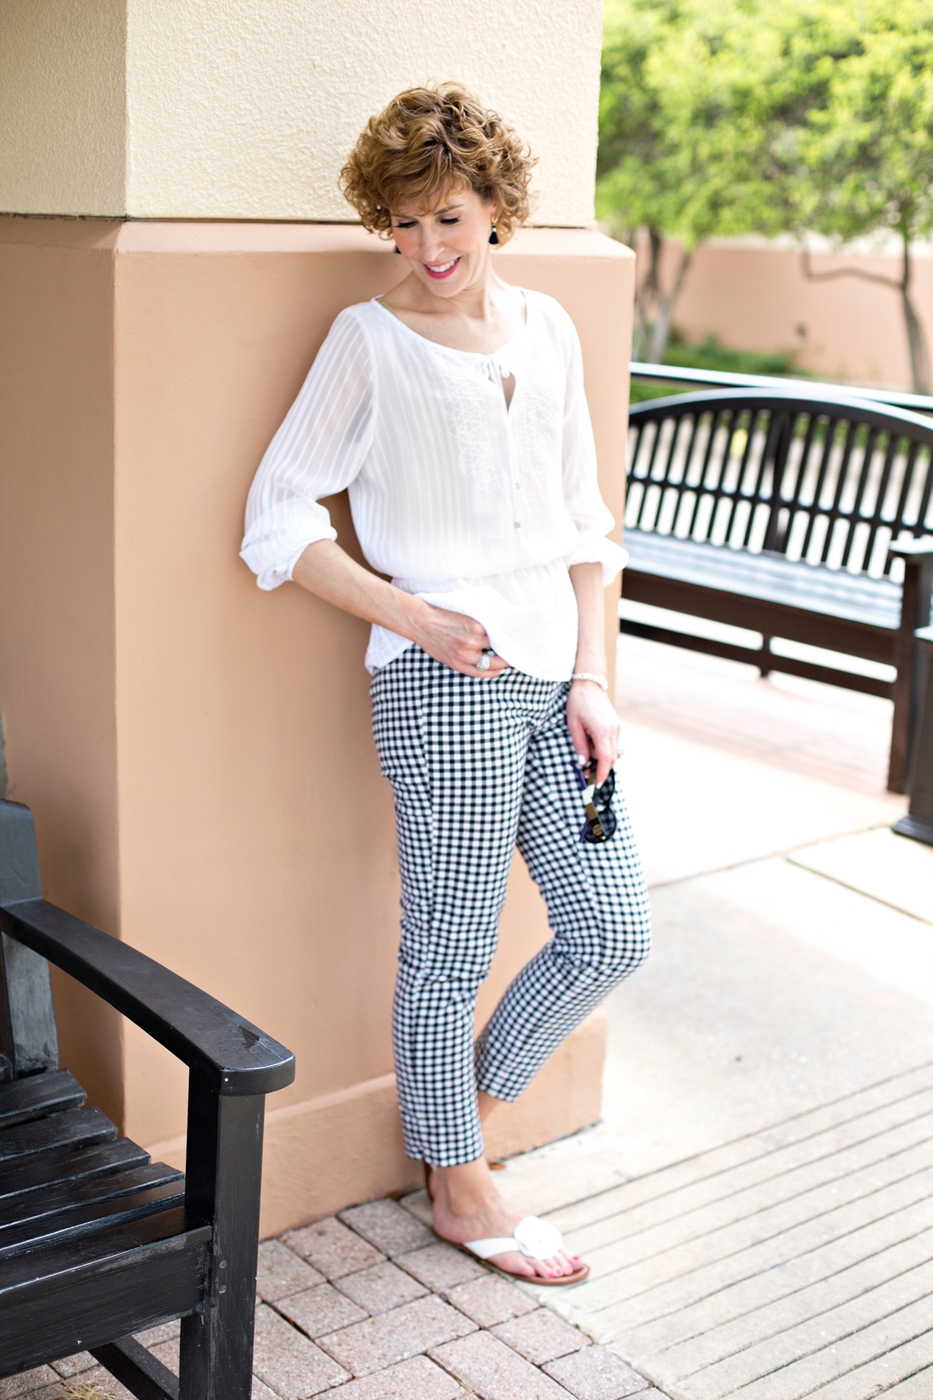 Party in the Picnic Print!   Get on the Gingham Trend